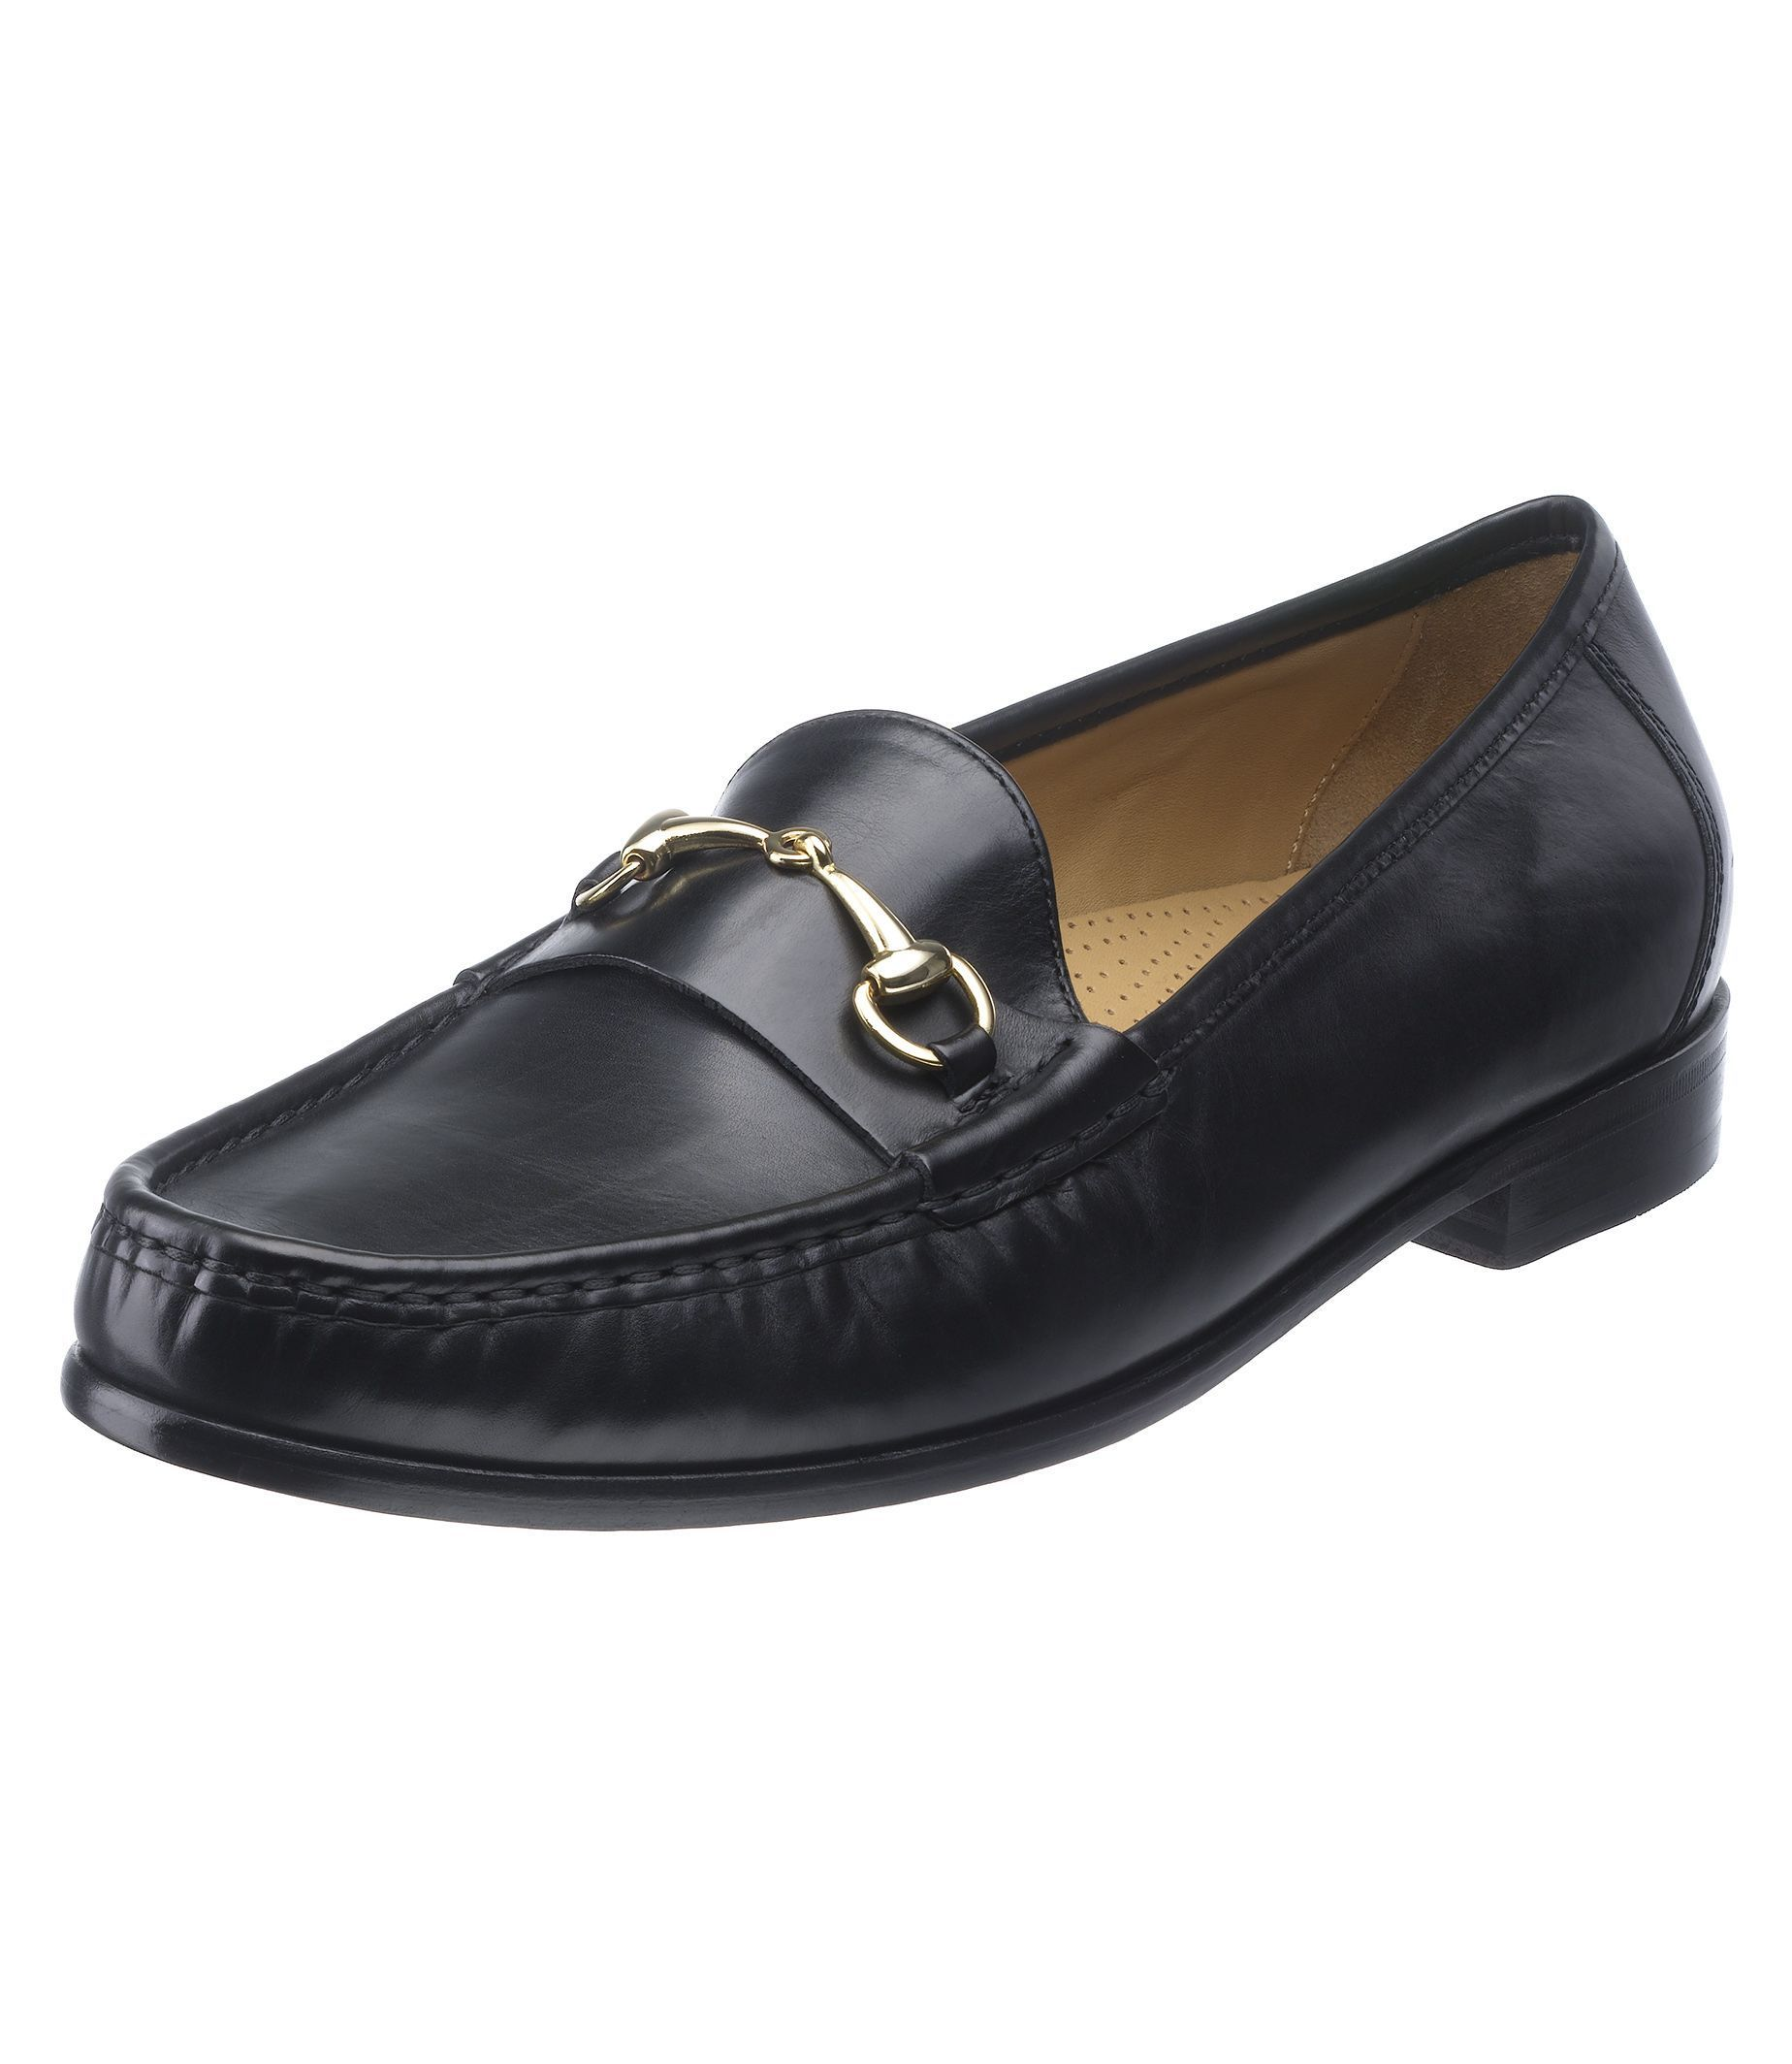 384cc8a8149 Ascot II Shoe by Cole Haan CLEARANCE